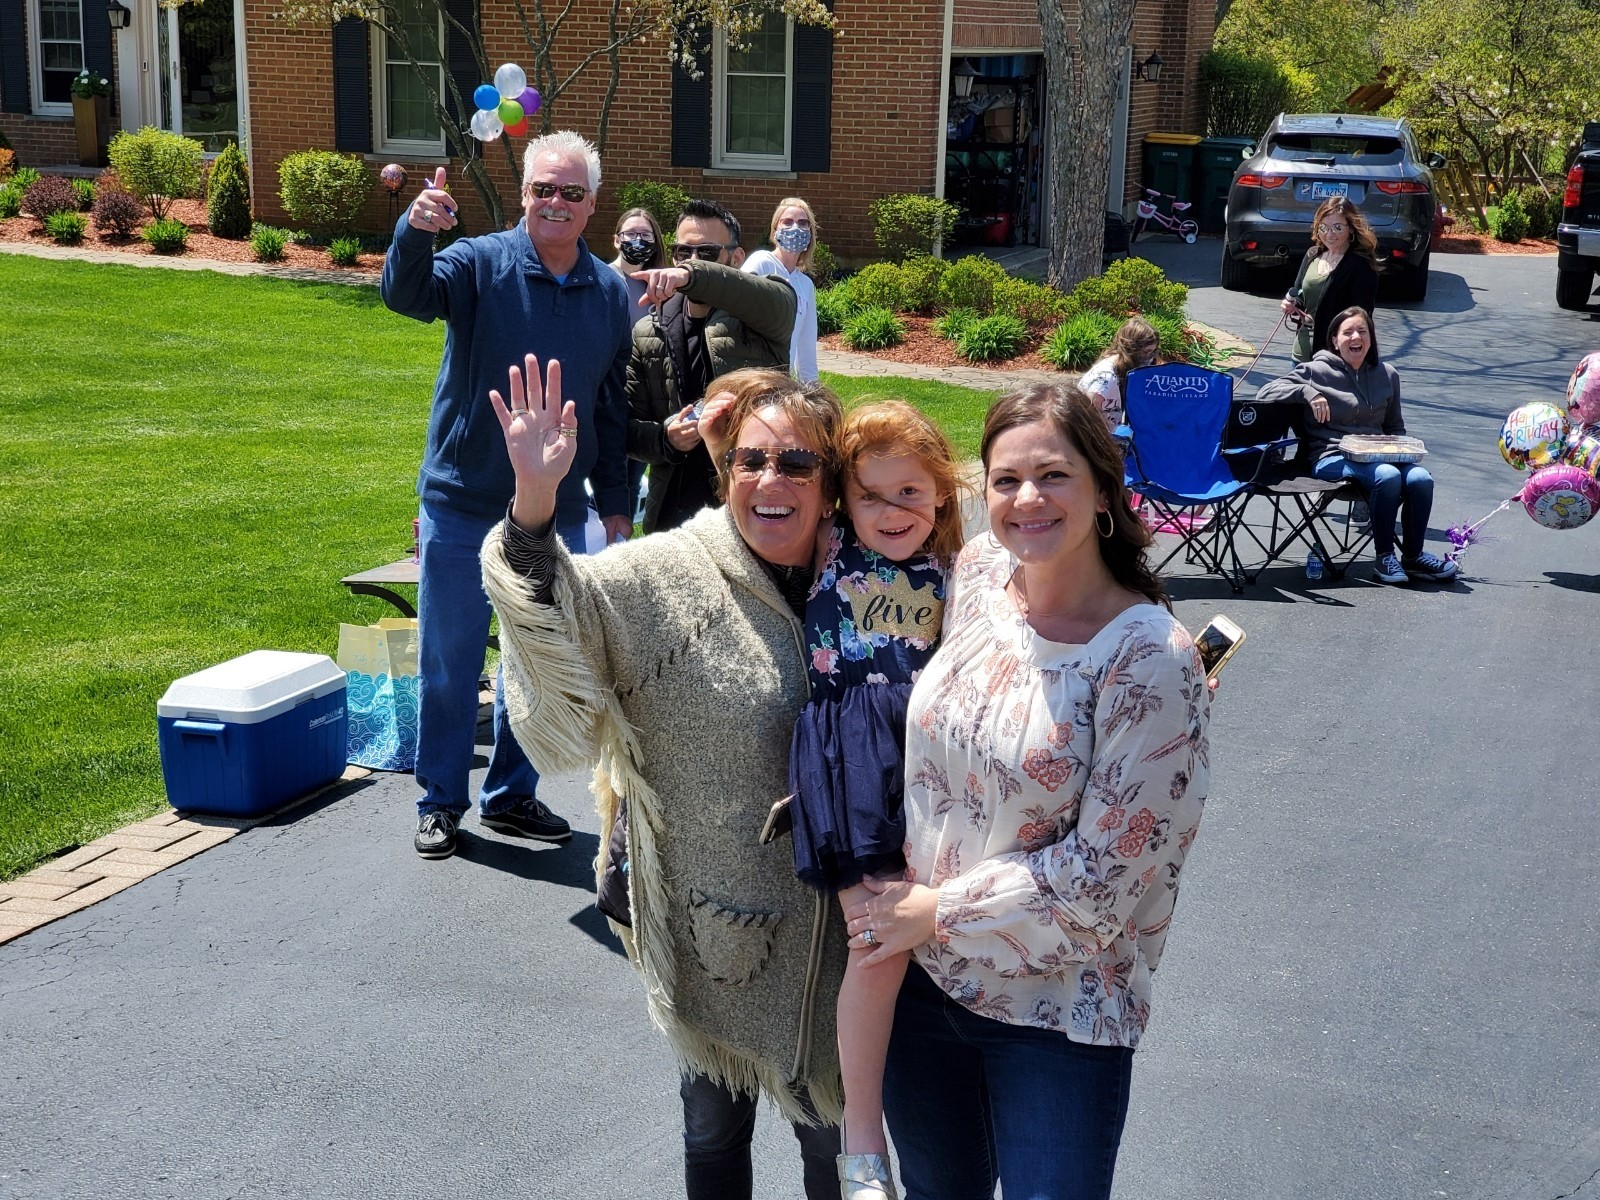 The Krumwiede family waves as people drive by for Peyton's birthday